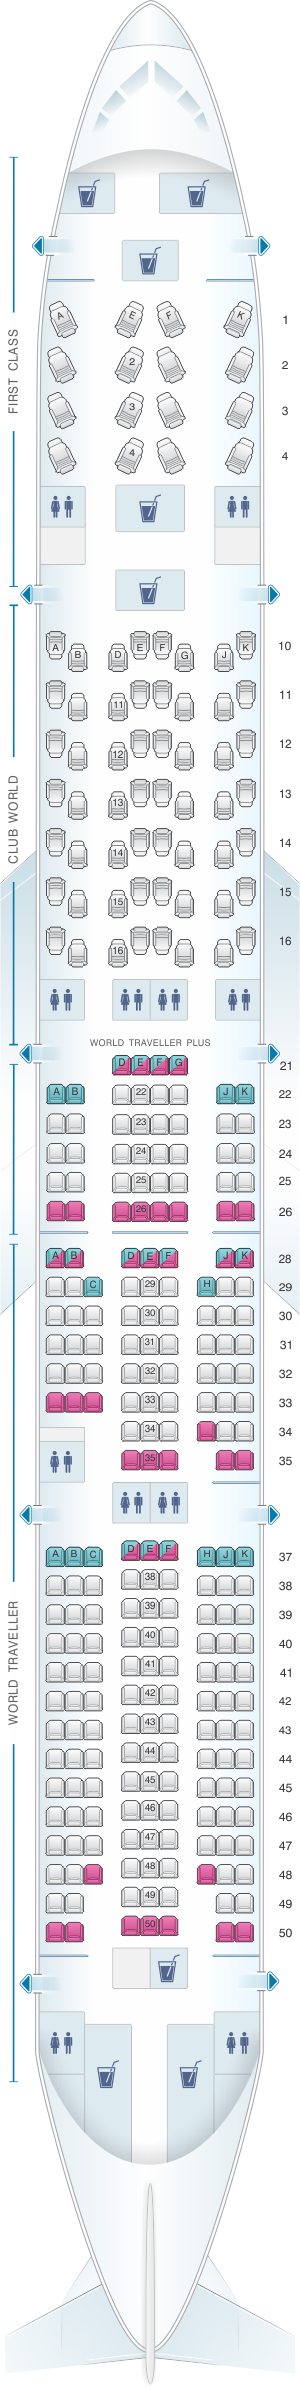 Seat map for British Airways Boeing B777 300